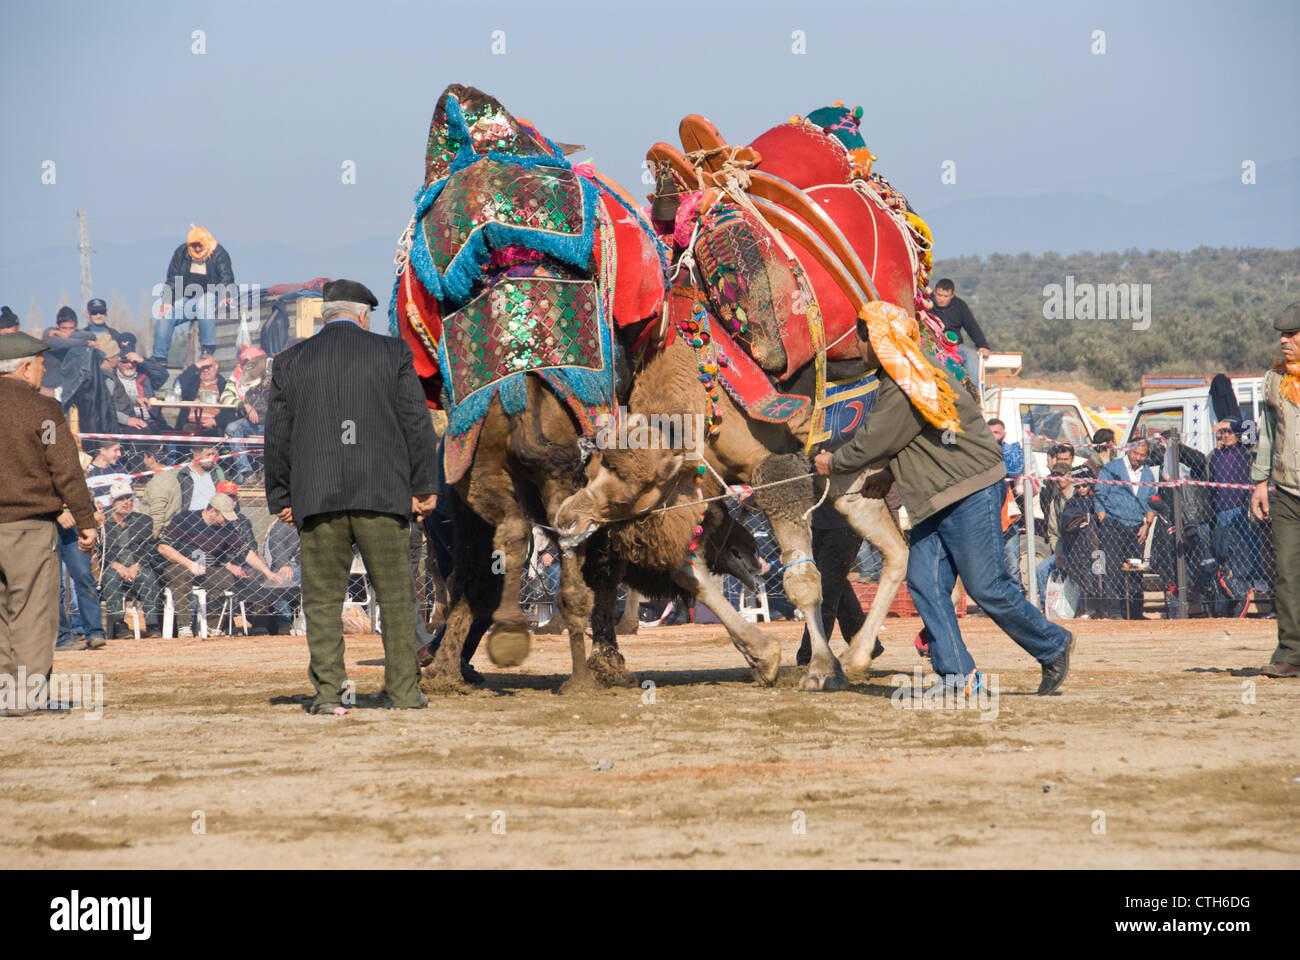 Camel Wrestling, Izmir, Turkey - Stock Image